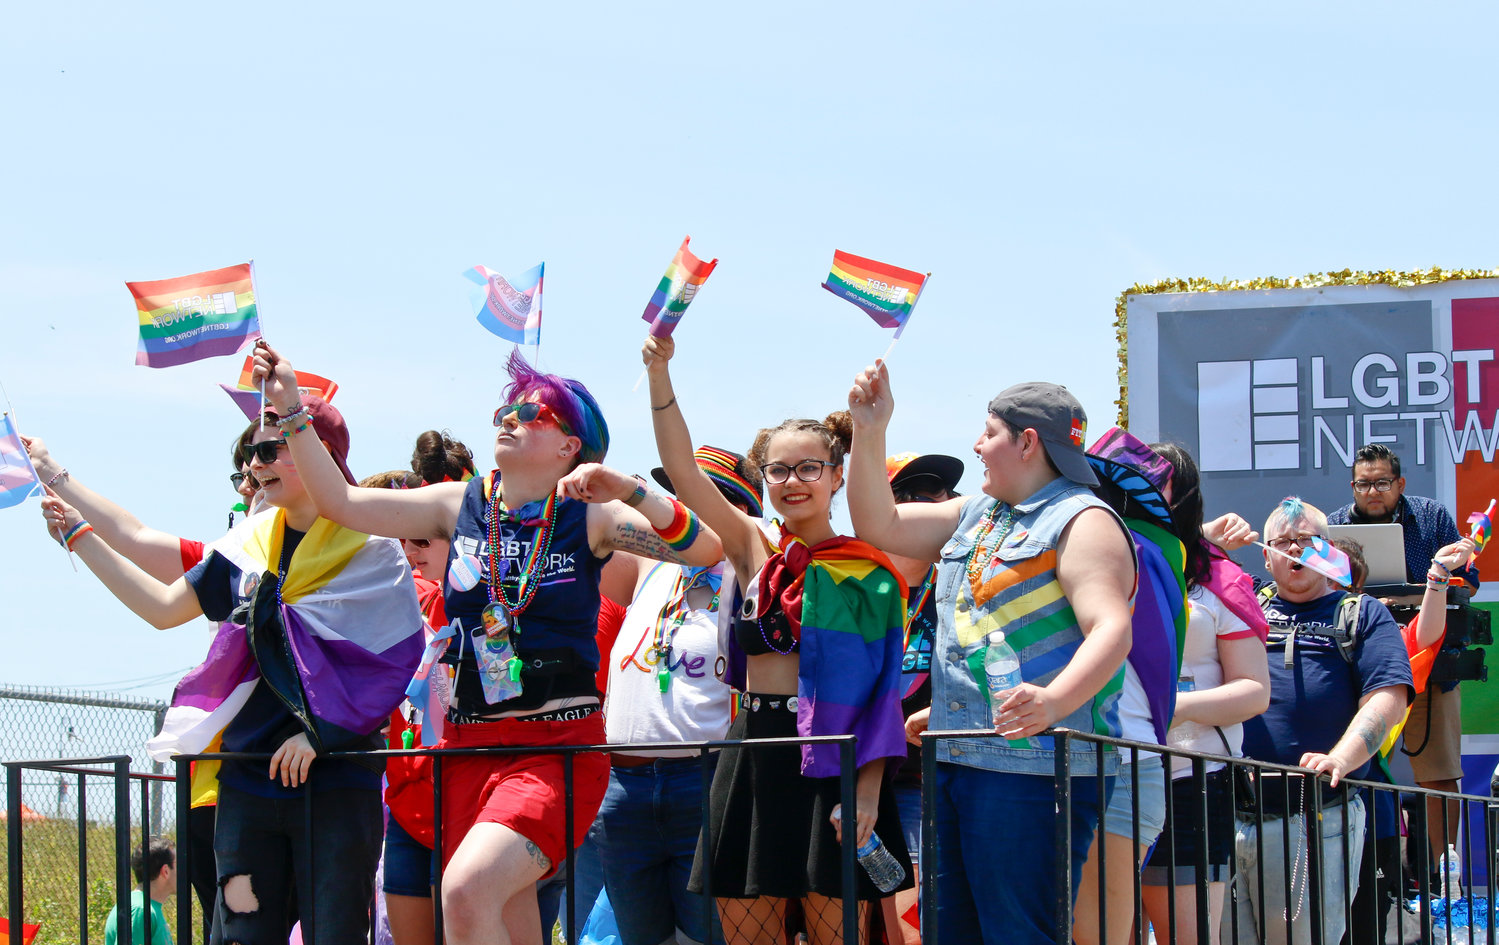 LGBT Network officials say that they will not have the pride festival in Long Beach this year.